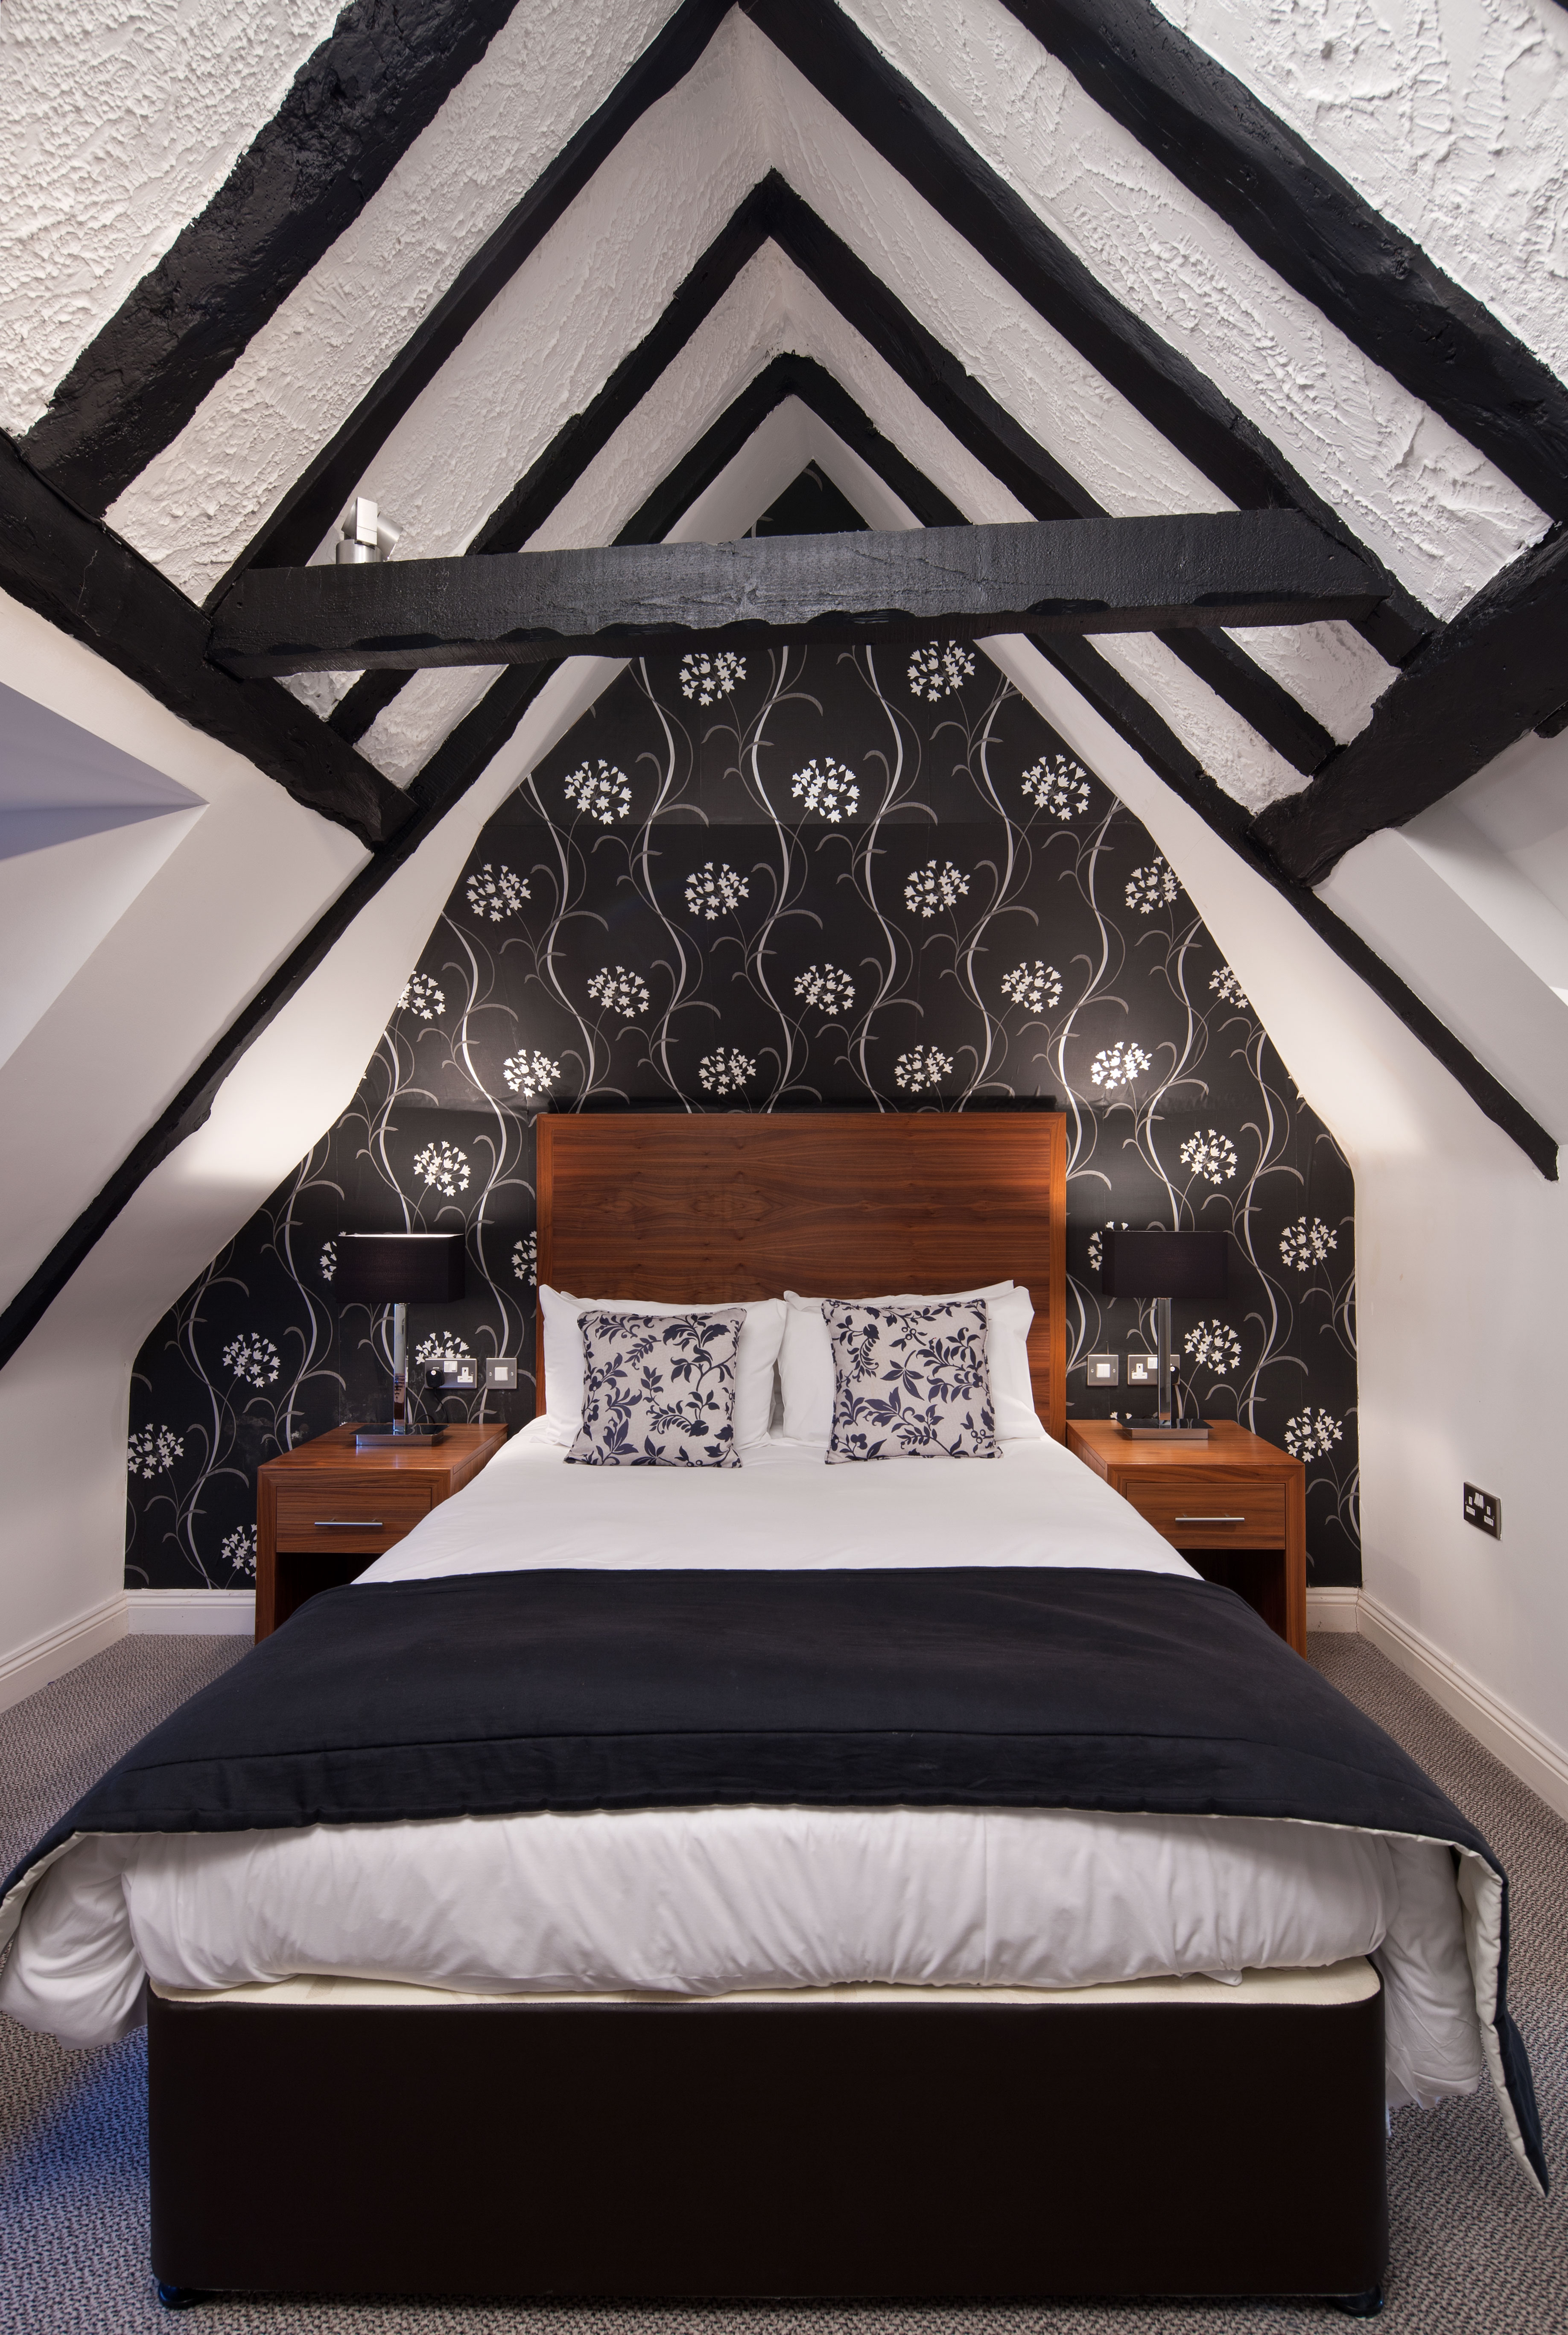 Boleyn hotel refurb - black and white design